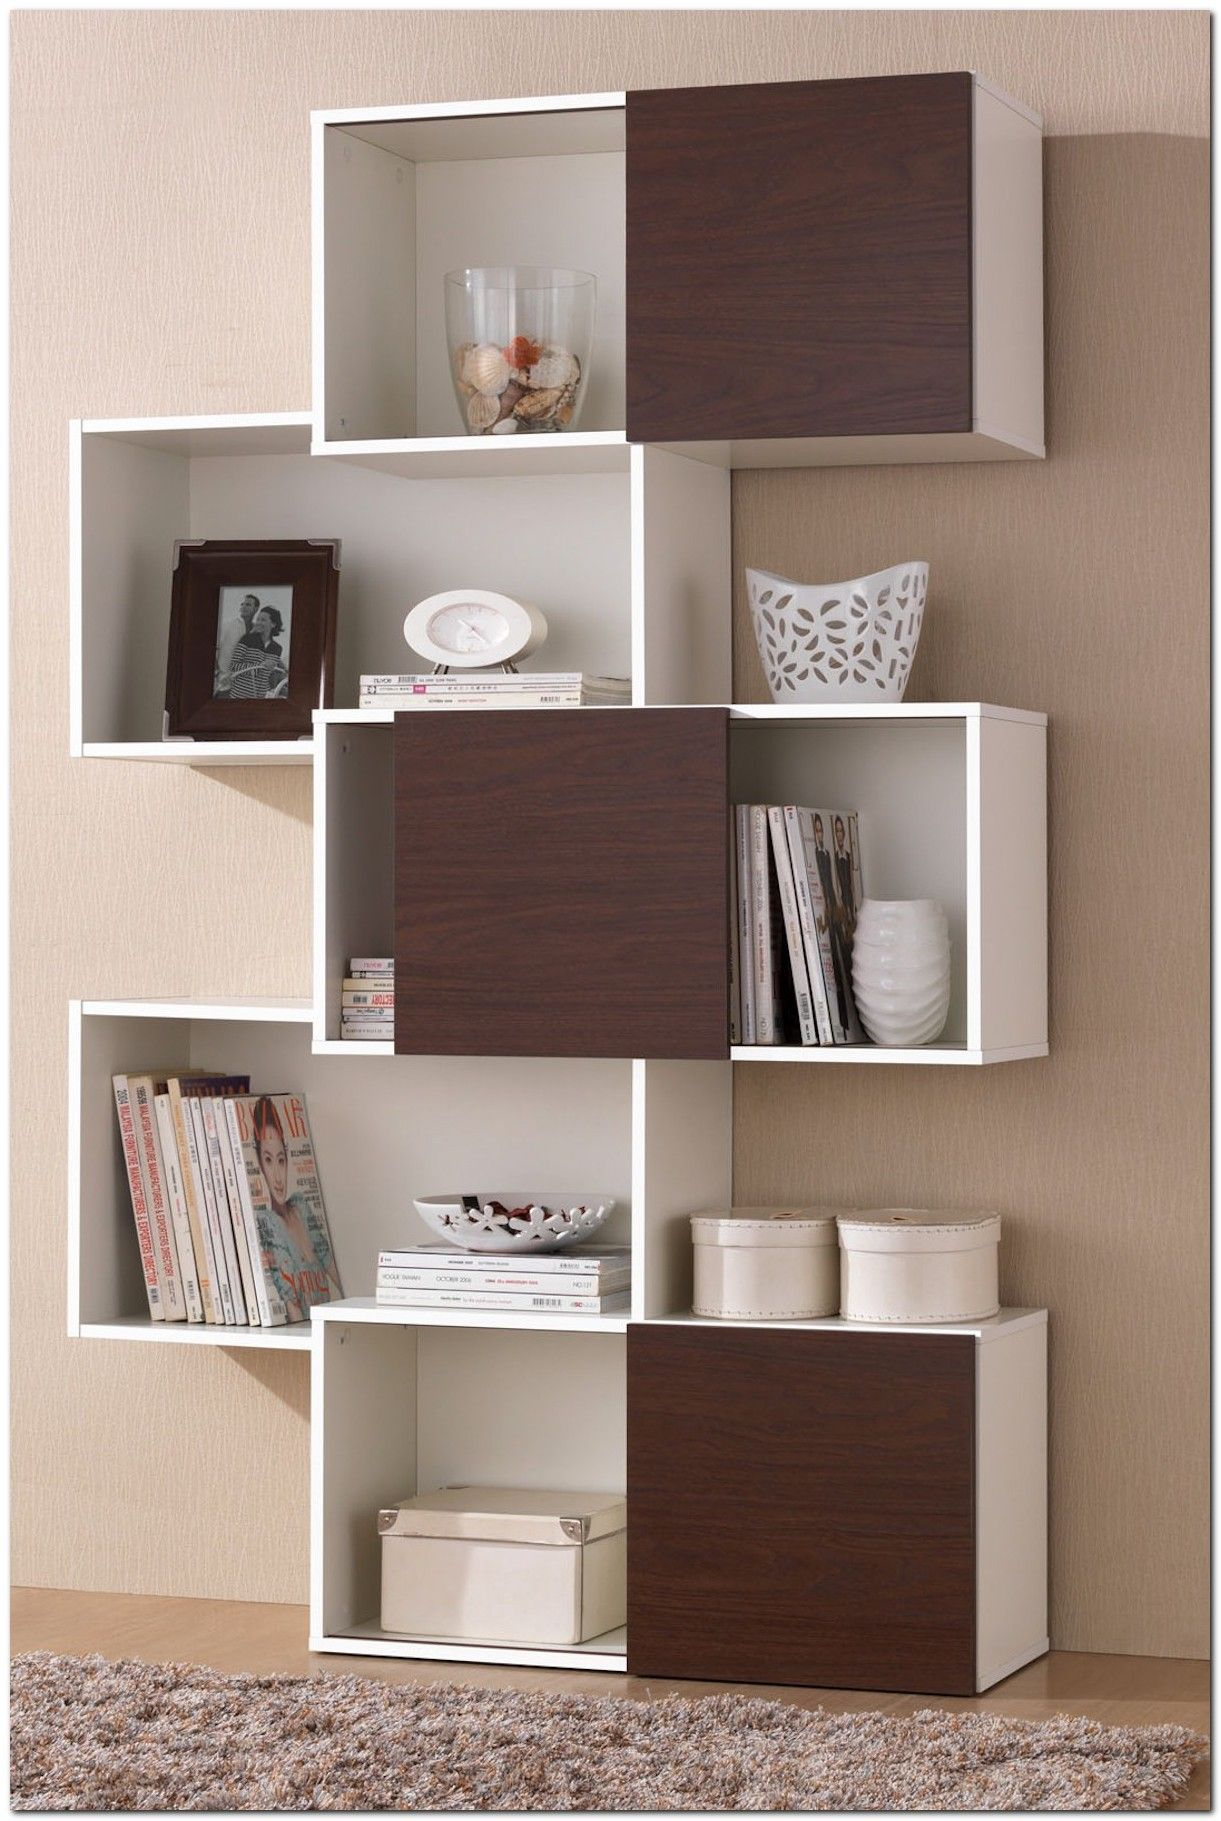 99 Bookshelf Ideas To Make Your Small Apartment Look Classy The Urban Interior Modern Bookcase Shelves Shelf Design